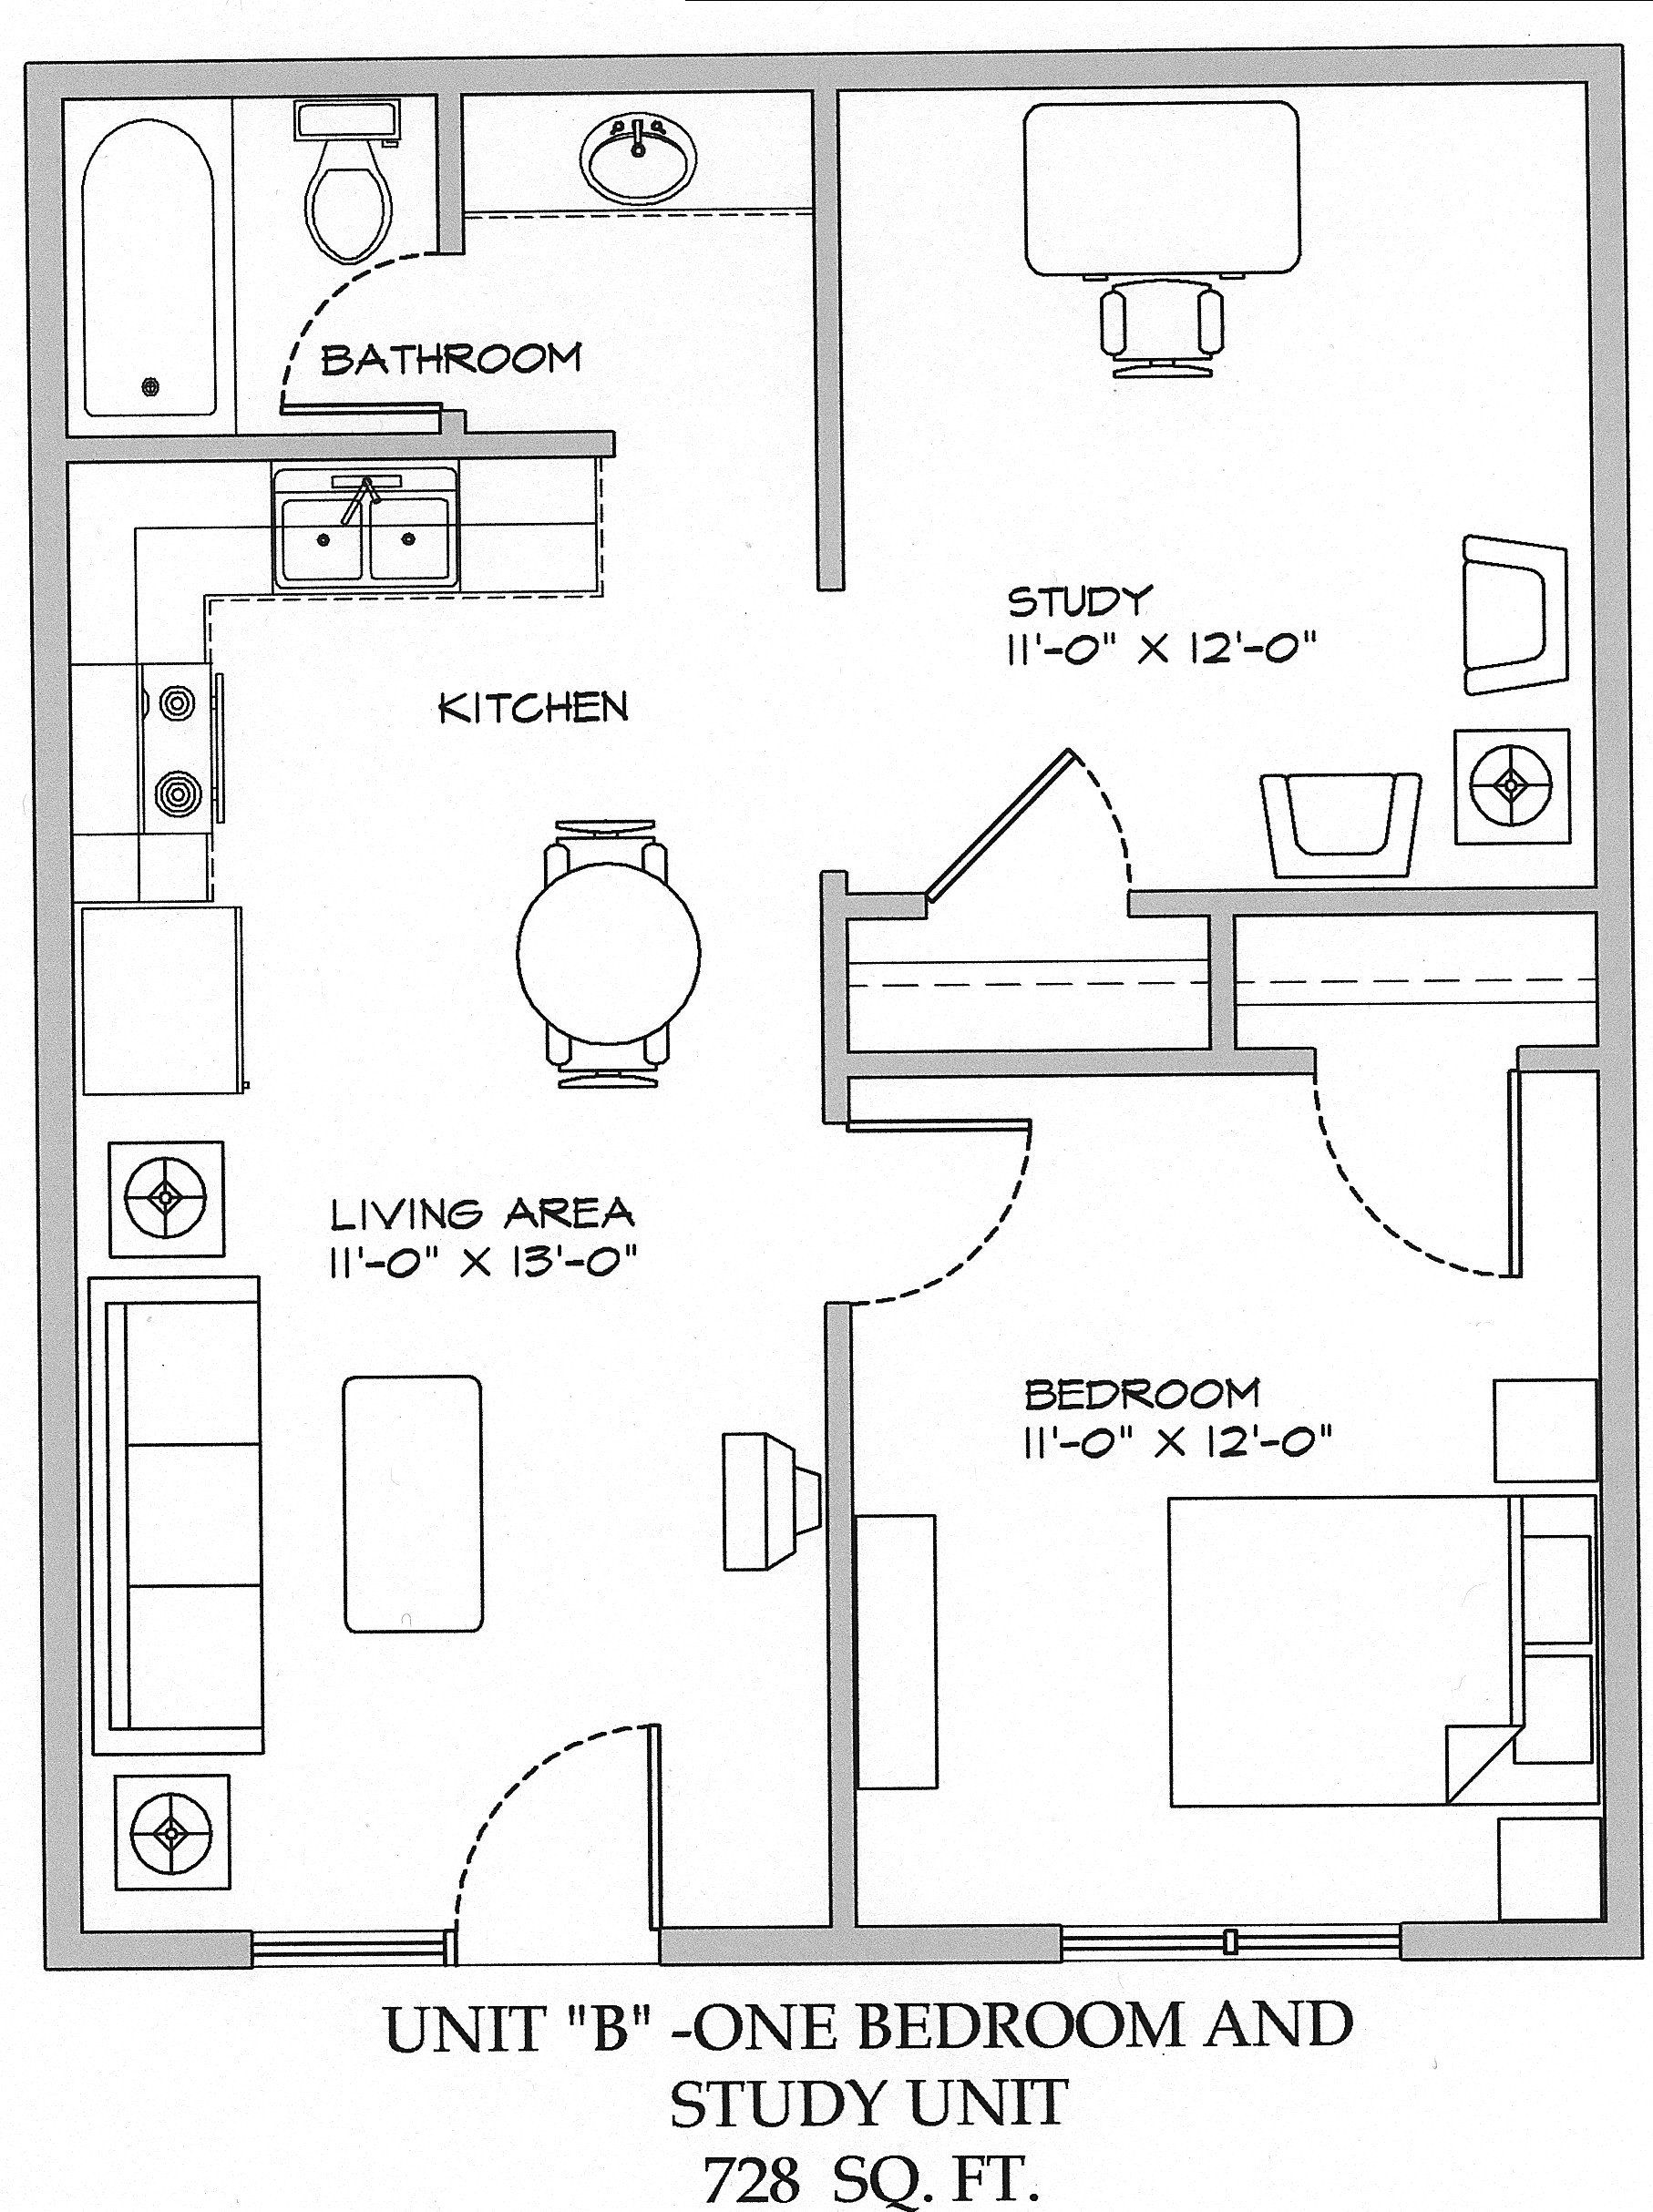 Small Living Room Dimensions Residence Halls And Prices Laundry Room Layouts Floor Plan Design Laundry Room Design